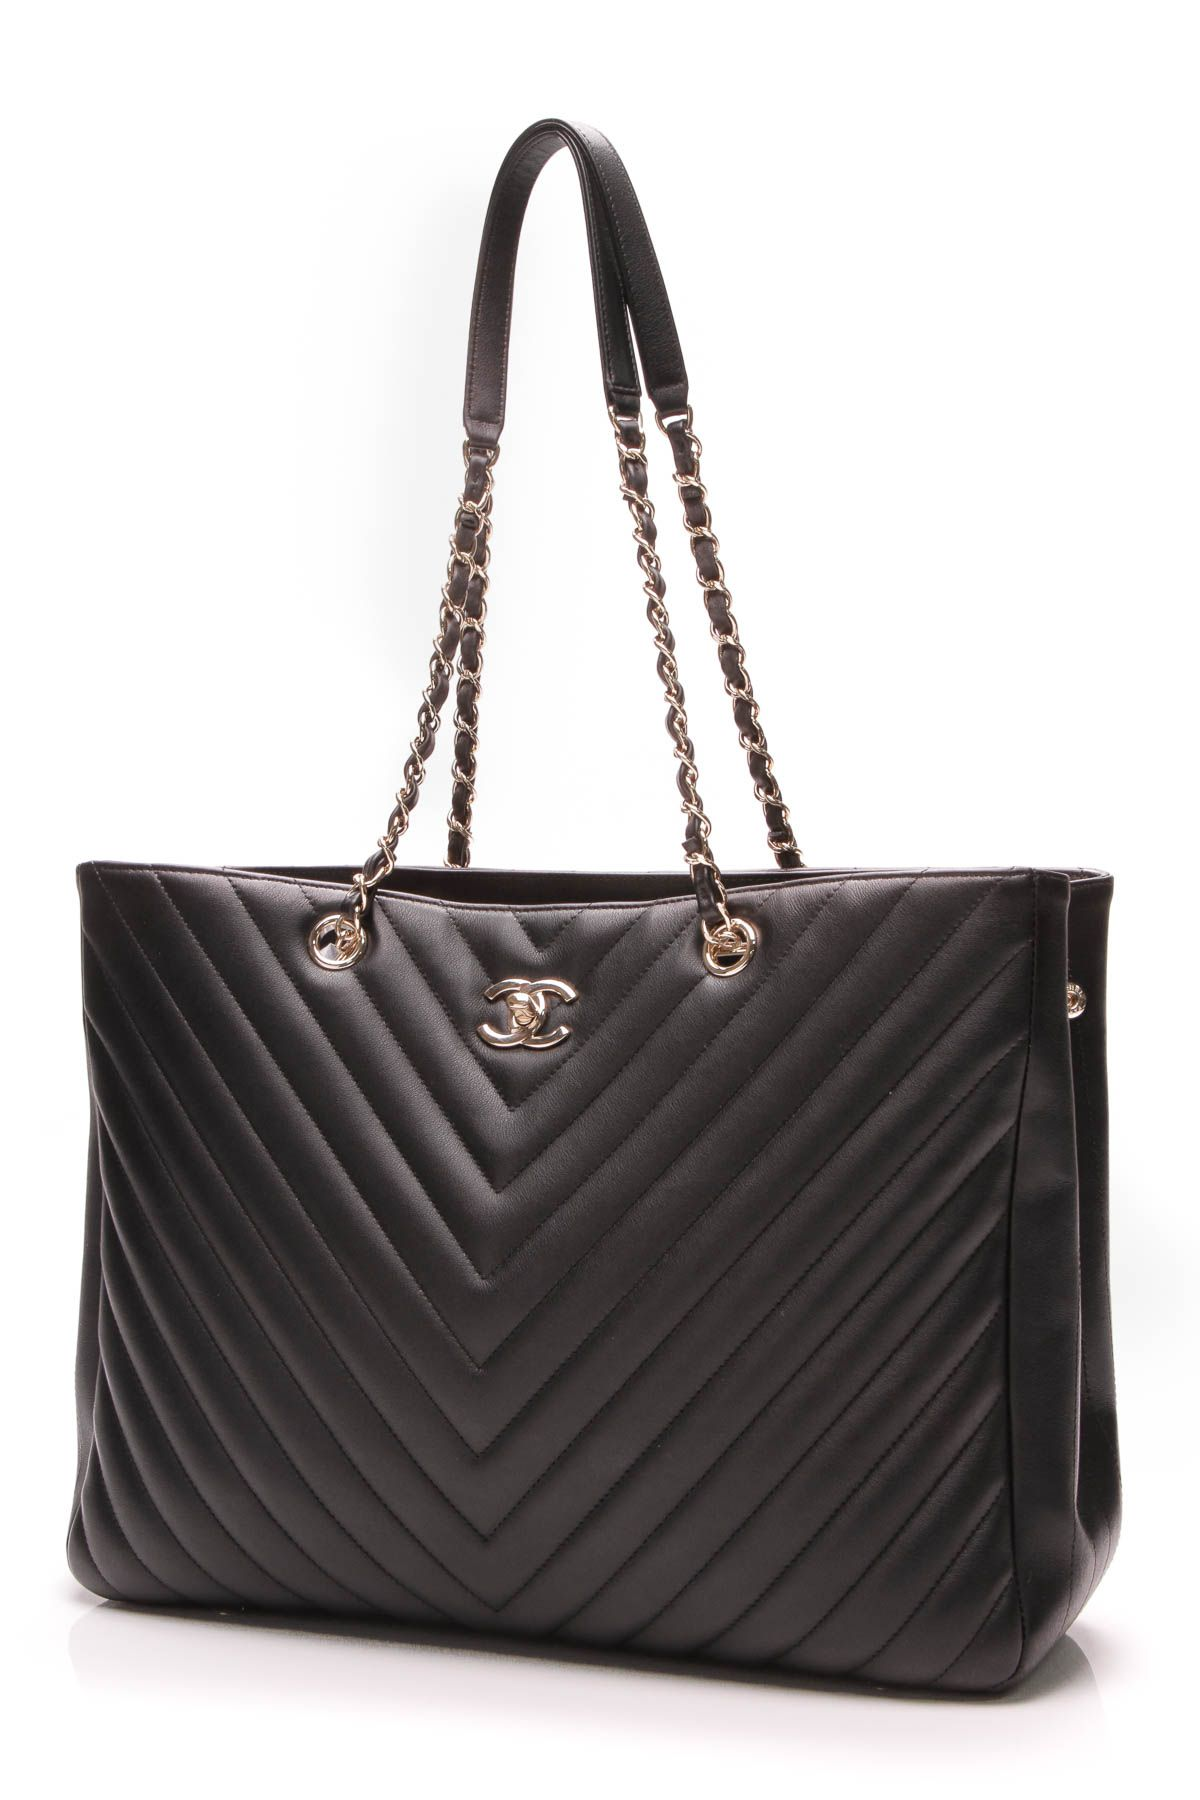 1e0ddbaf012f Chevron Tote Bag - Black Grained Calfskin in 2019 | Crazy for Coco ...